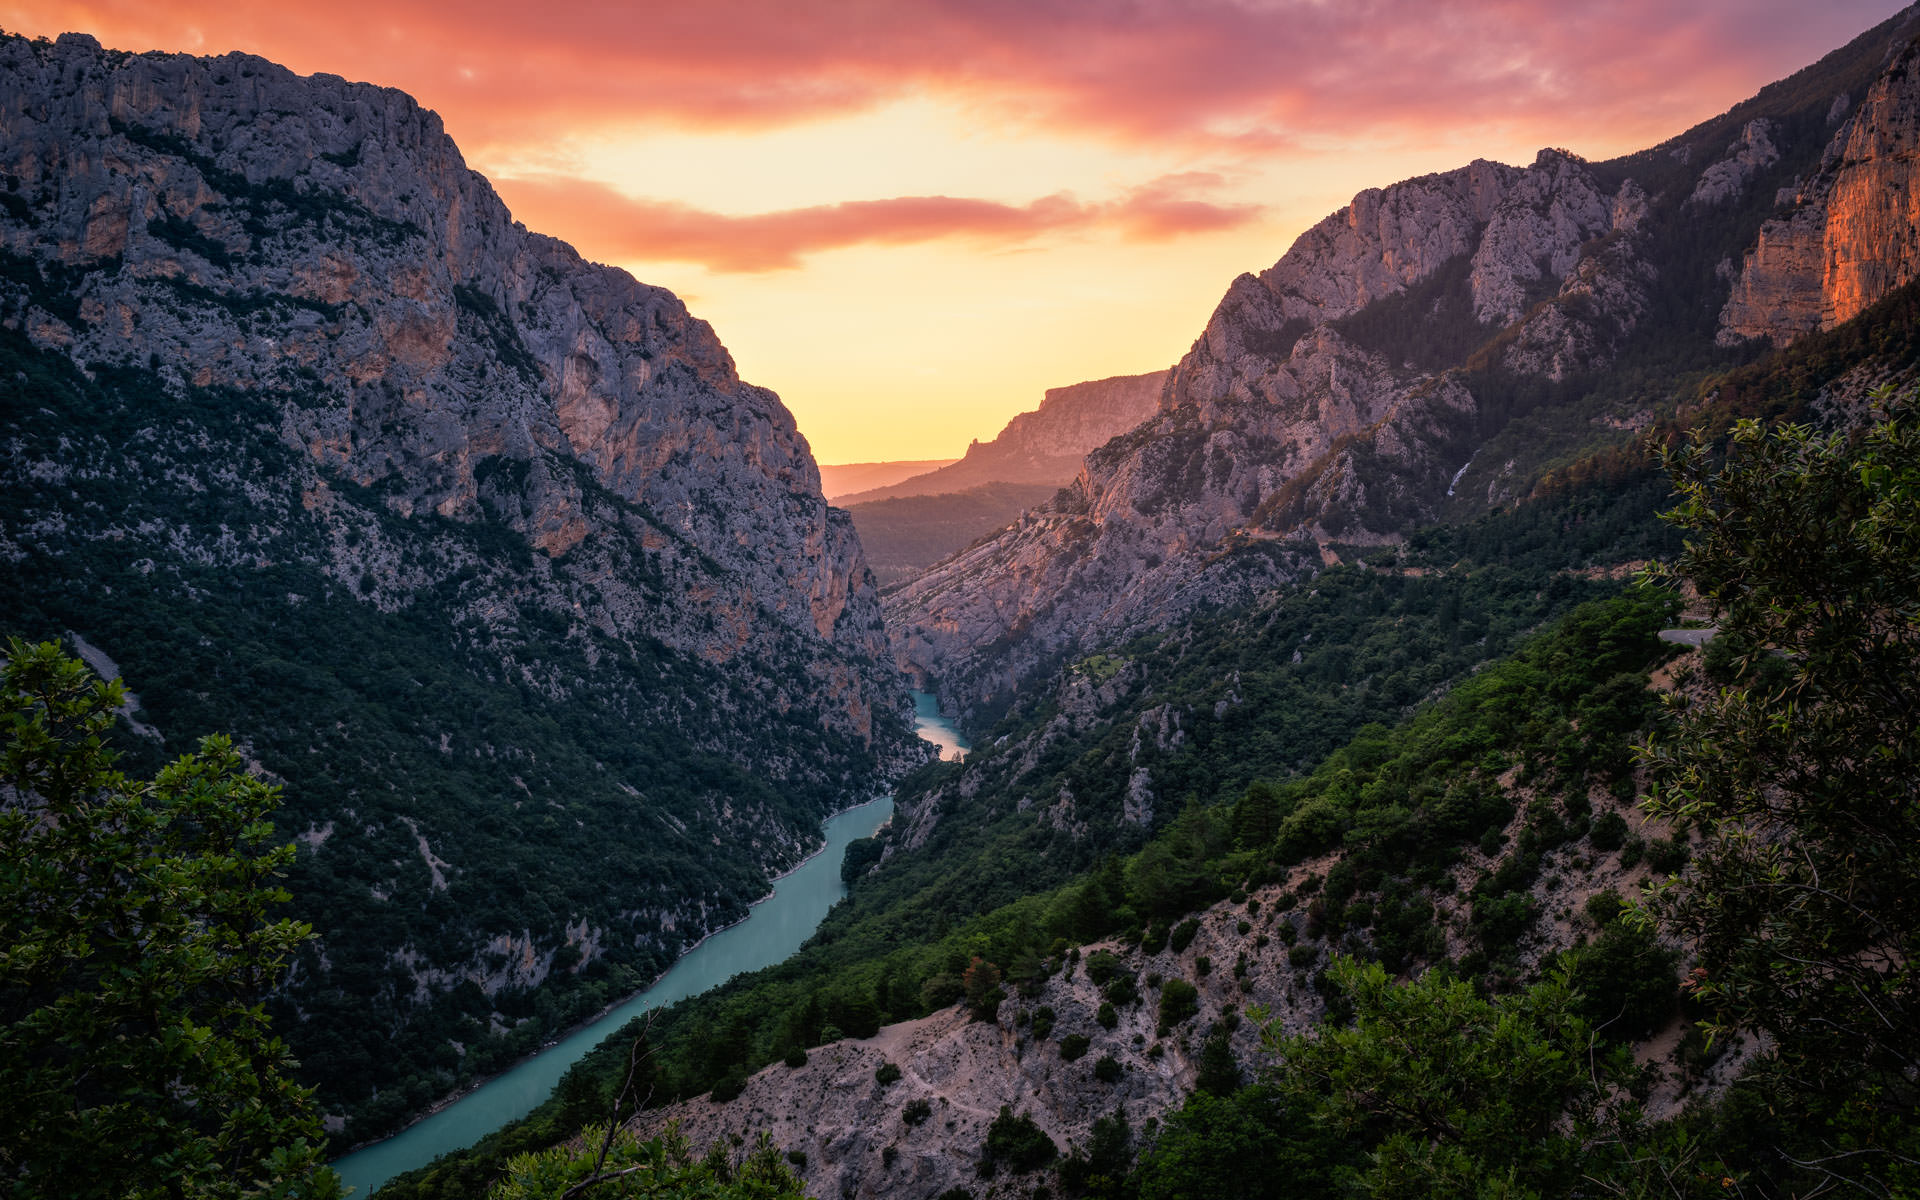 Sunset at Verdon Canyon - France - Landscape Photography